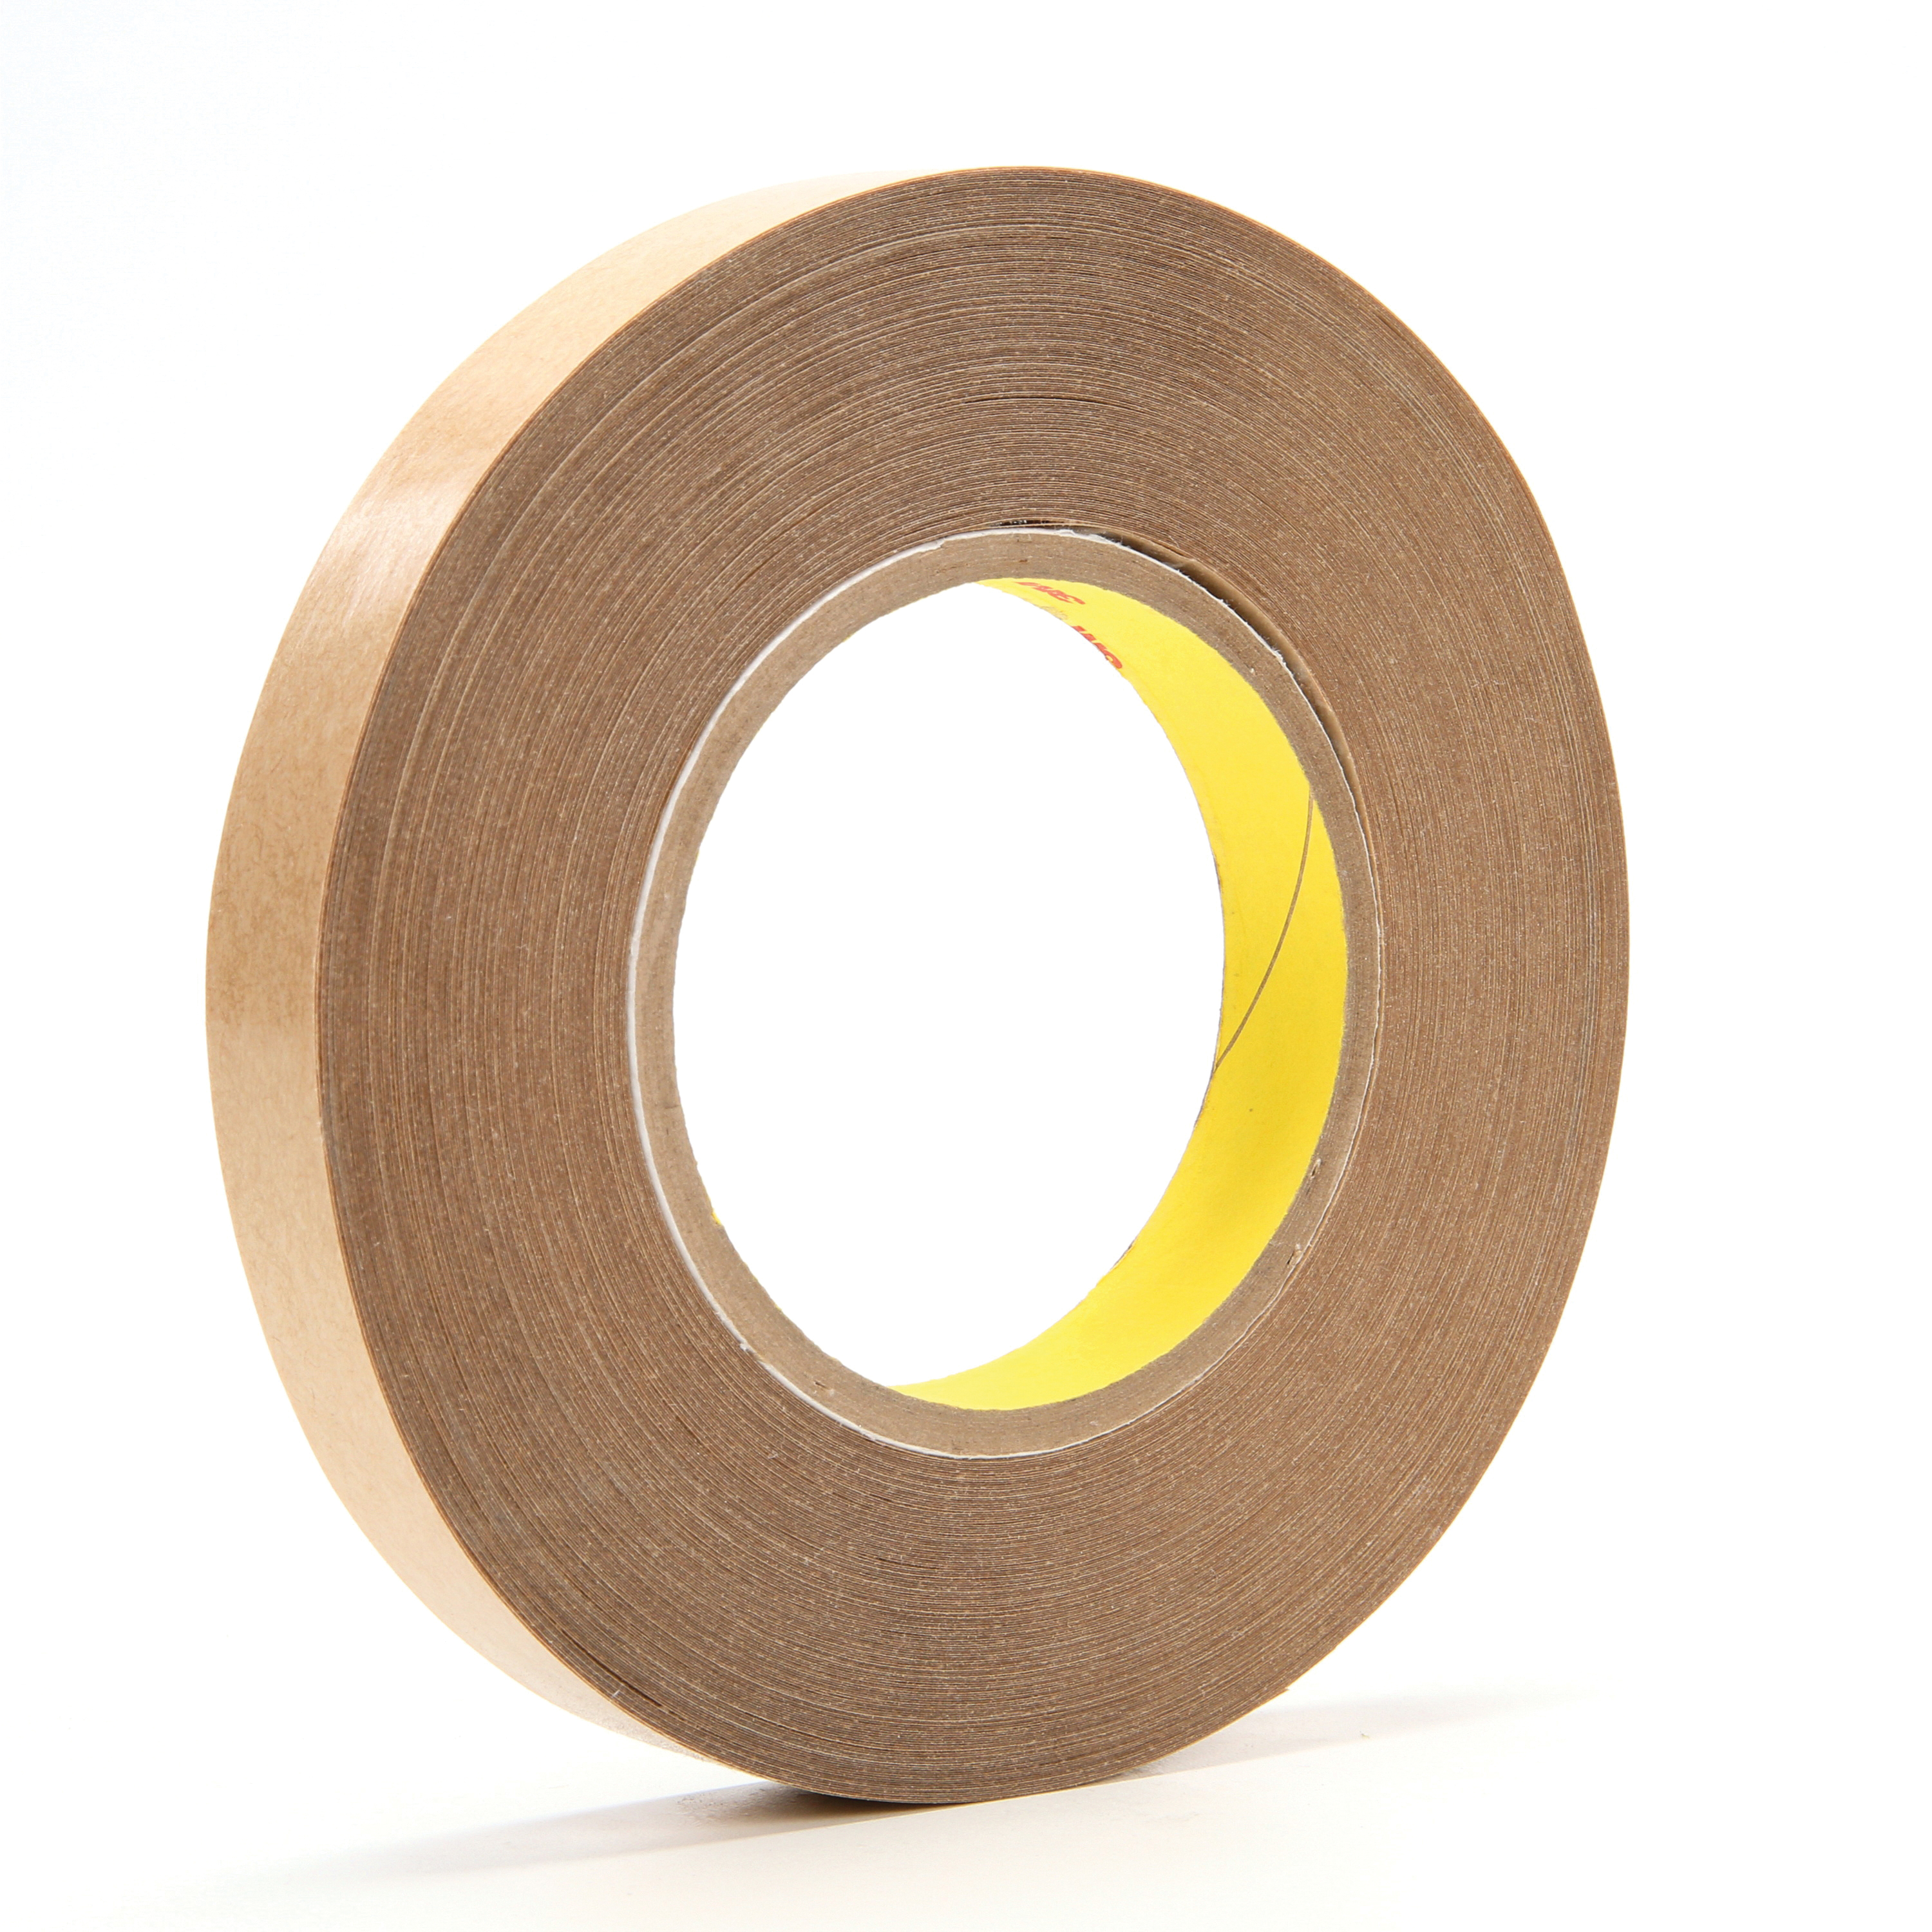 3M™ 021200-04553 General Purpose High Tack Adhesive Transfer Tape, 60 yd L x 3/4 in W, 8.5 mil THK, 5 mil 300 Acrylic Adhesive, Clear